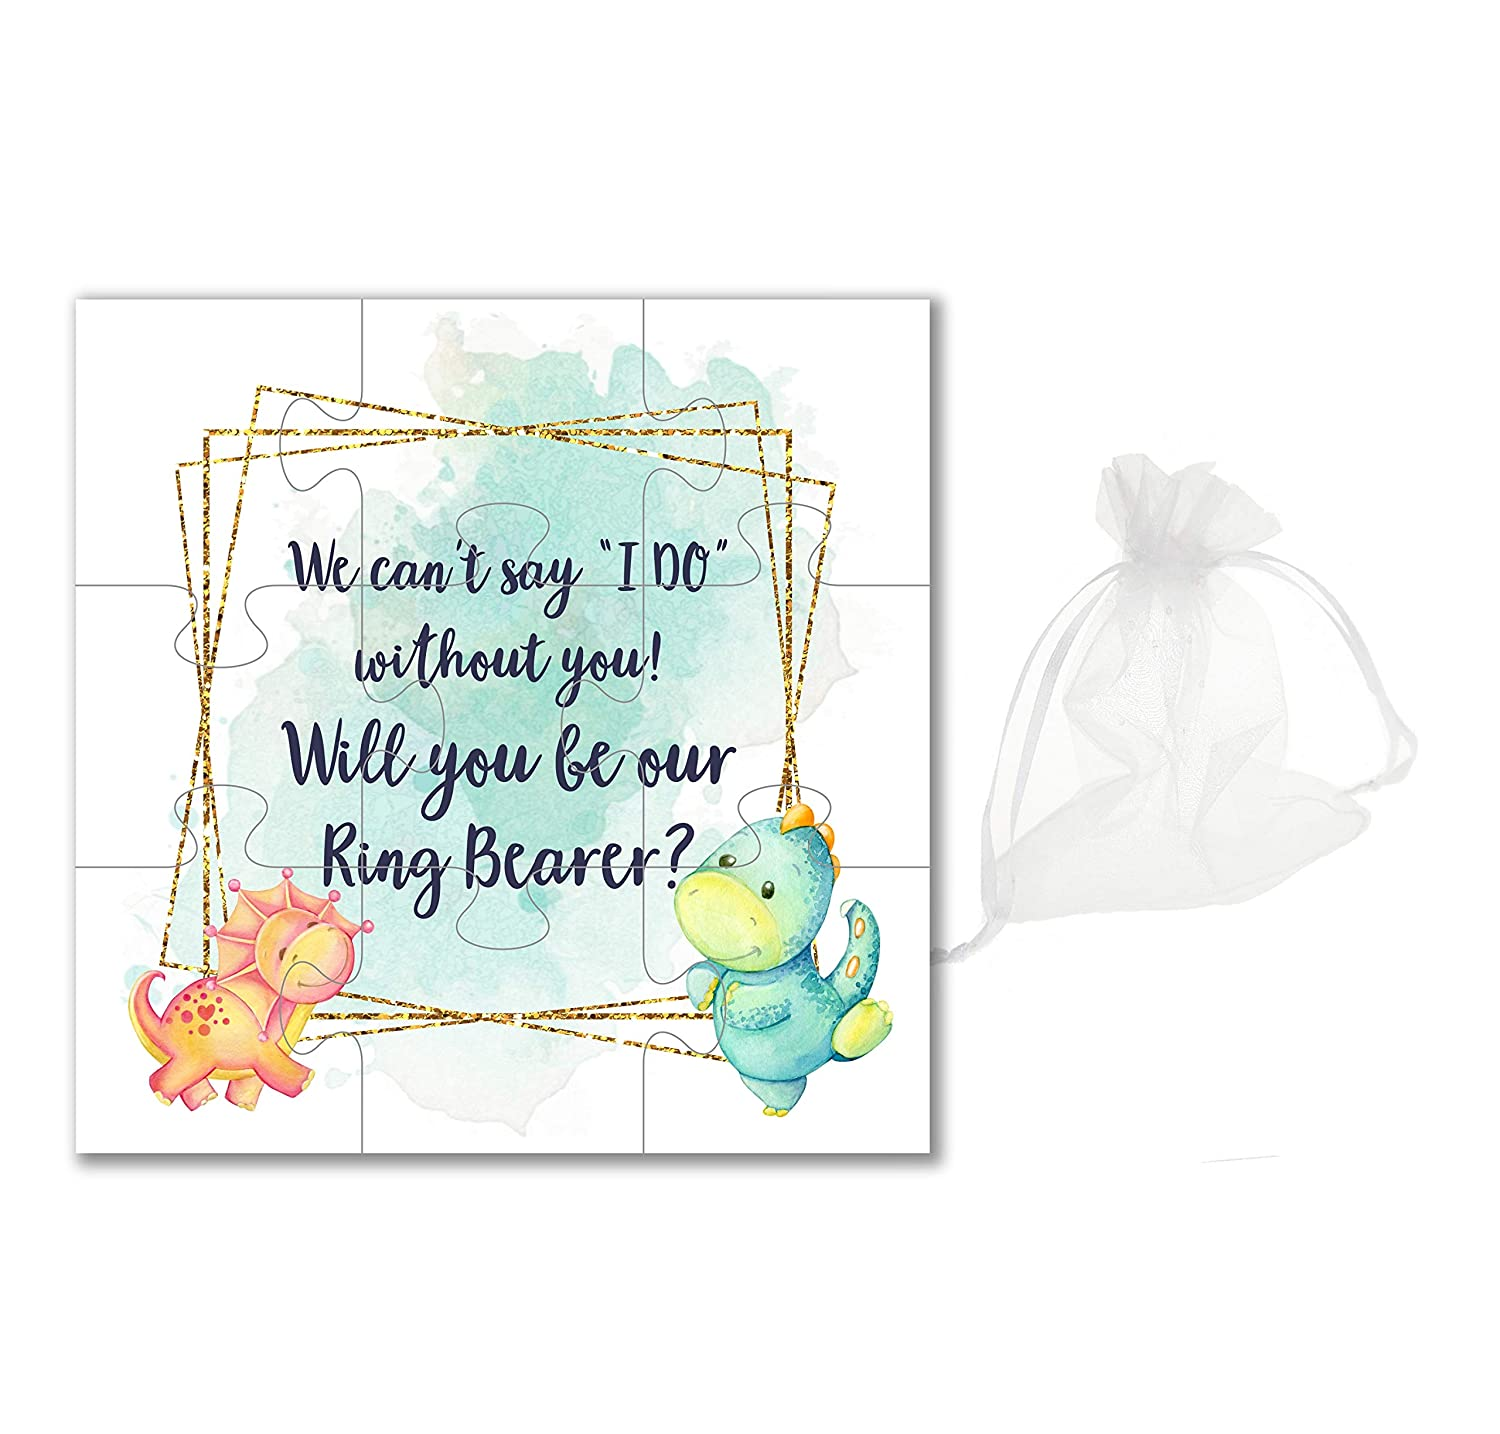 Ring Bearer Proposal Will you be our Ring Bearer puzzle invitation